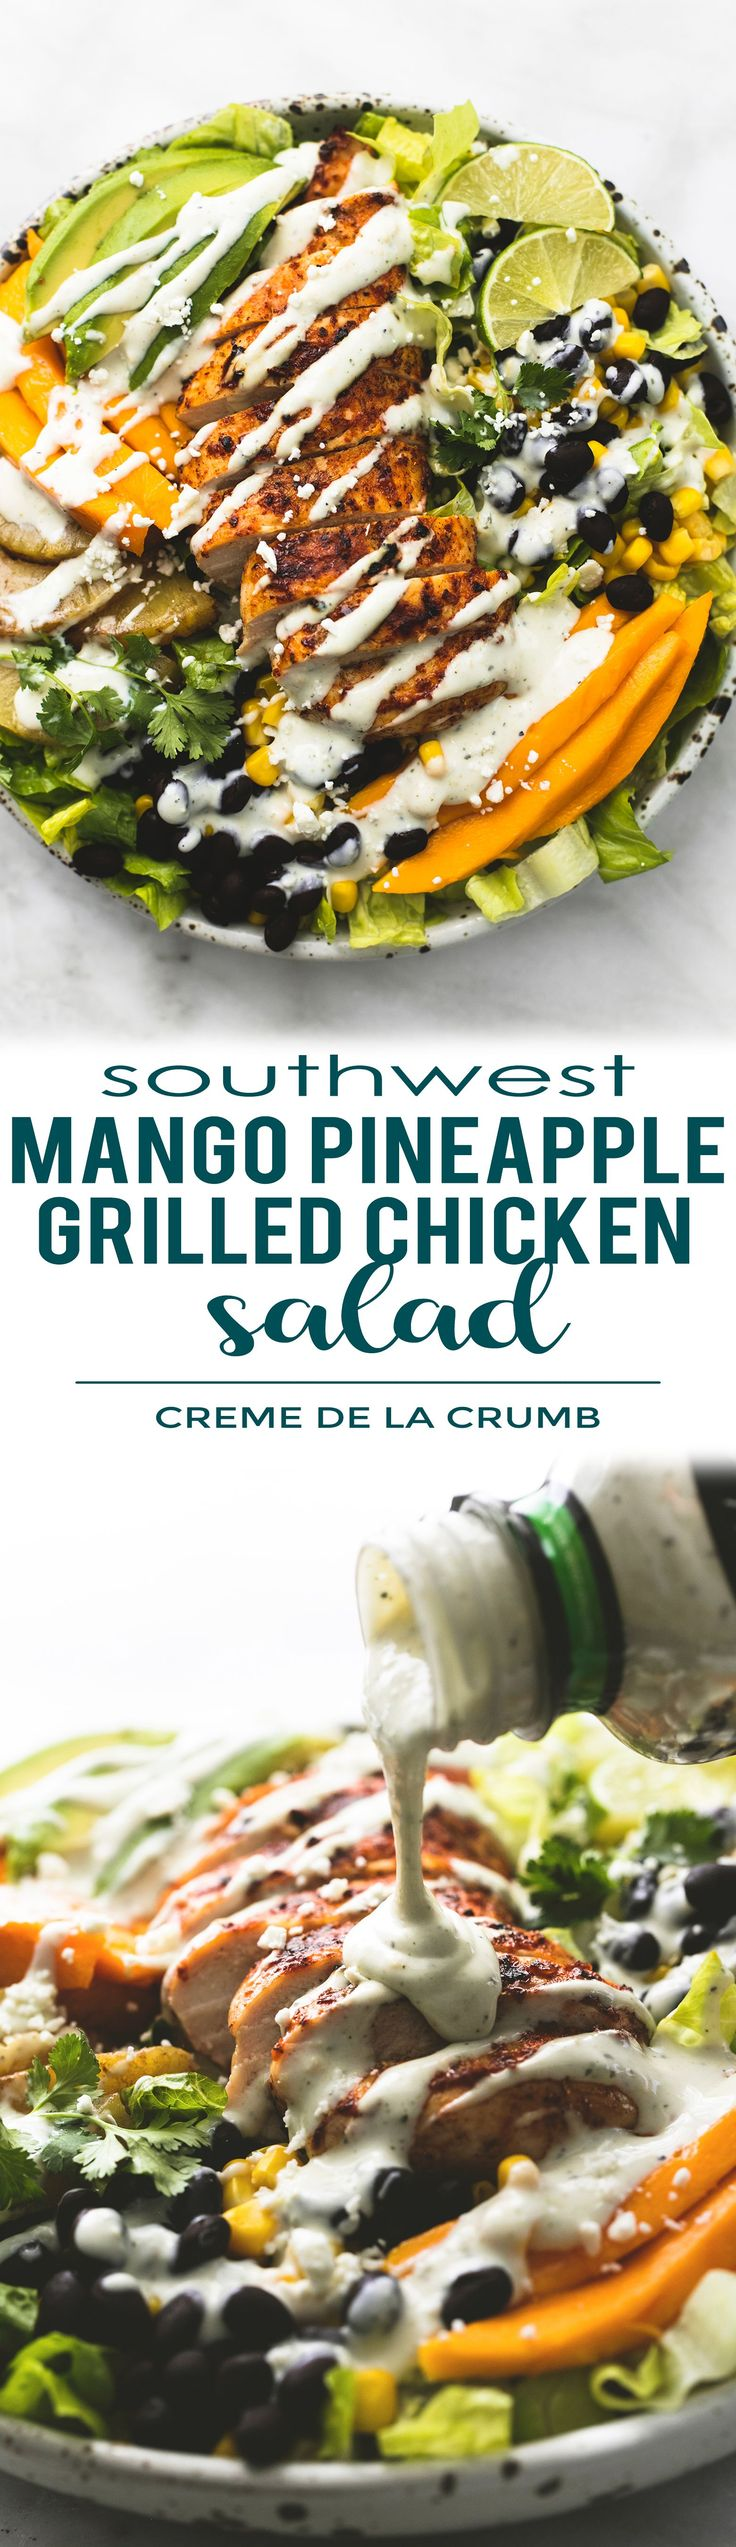 Southwest mango pineapple grilled chicken salad is bursting with big, bold, Summer ingredients like corn, avocado, mango and pineapple, and creamy @bolthousefarms organic avocado ranch dressing.| lecremedelacrumb #sponsored